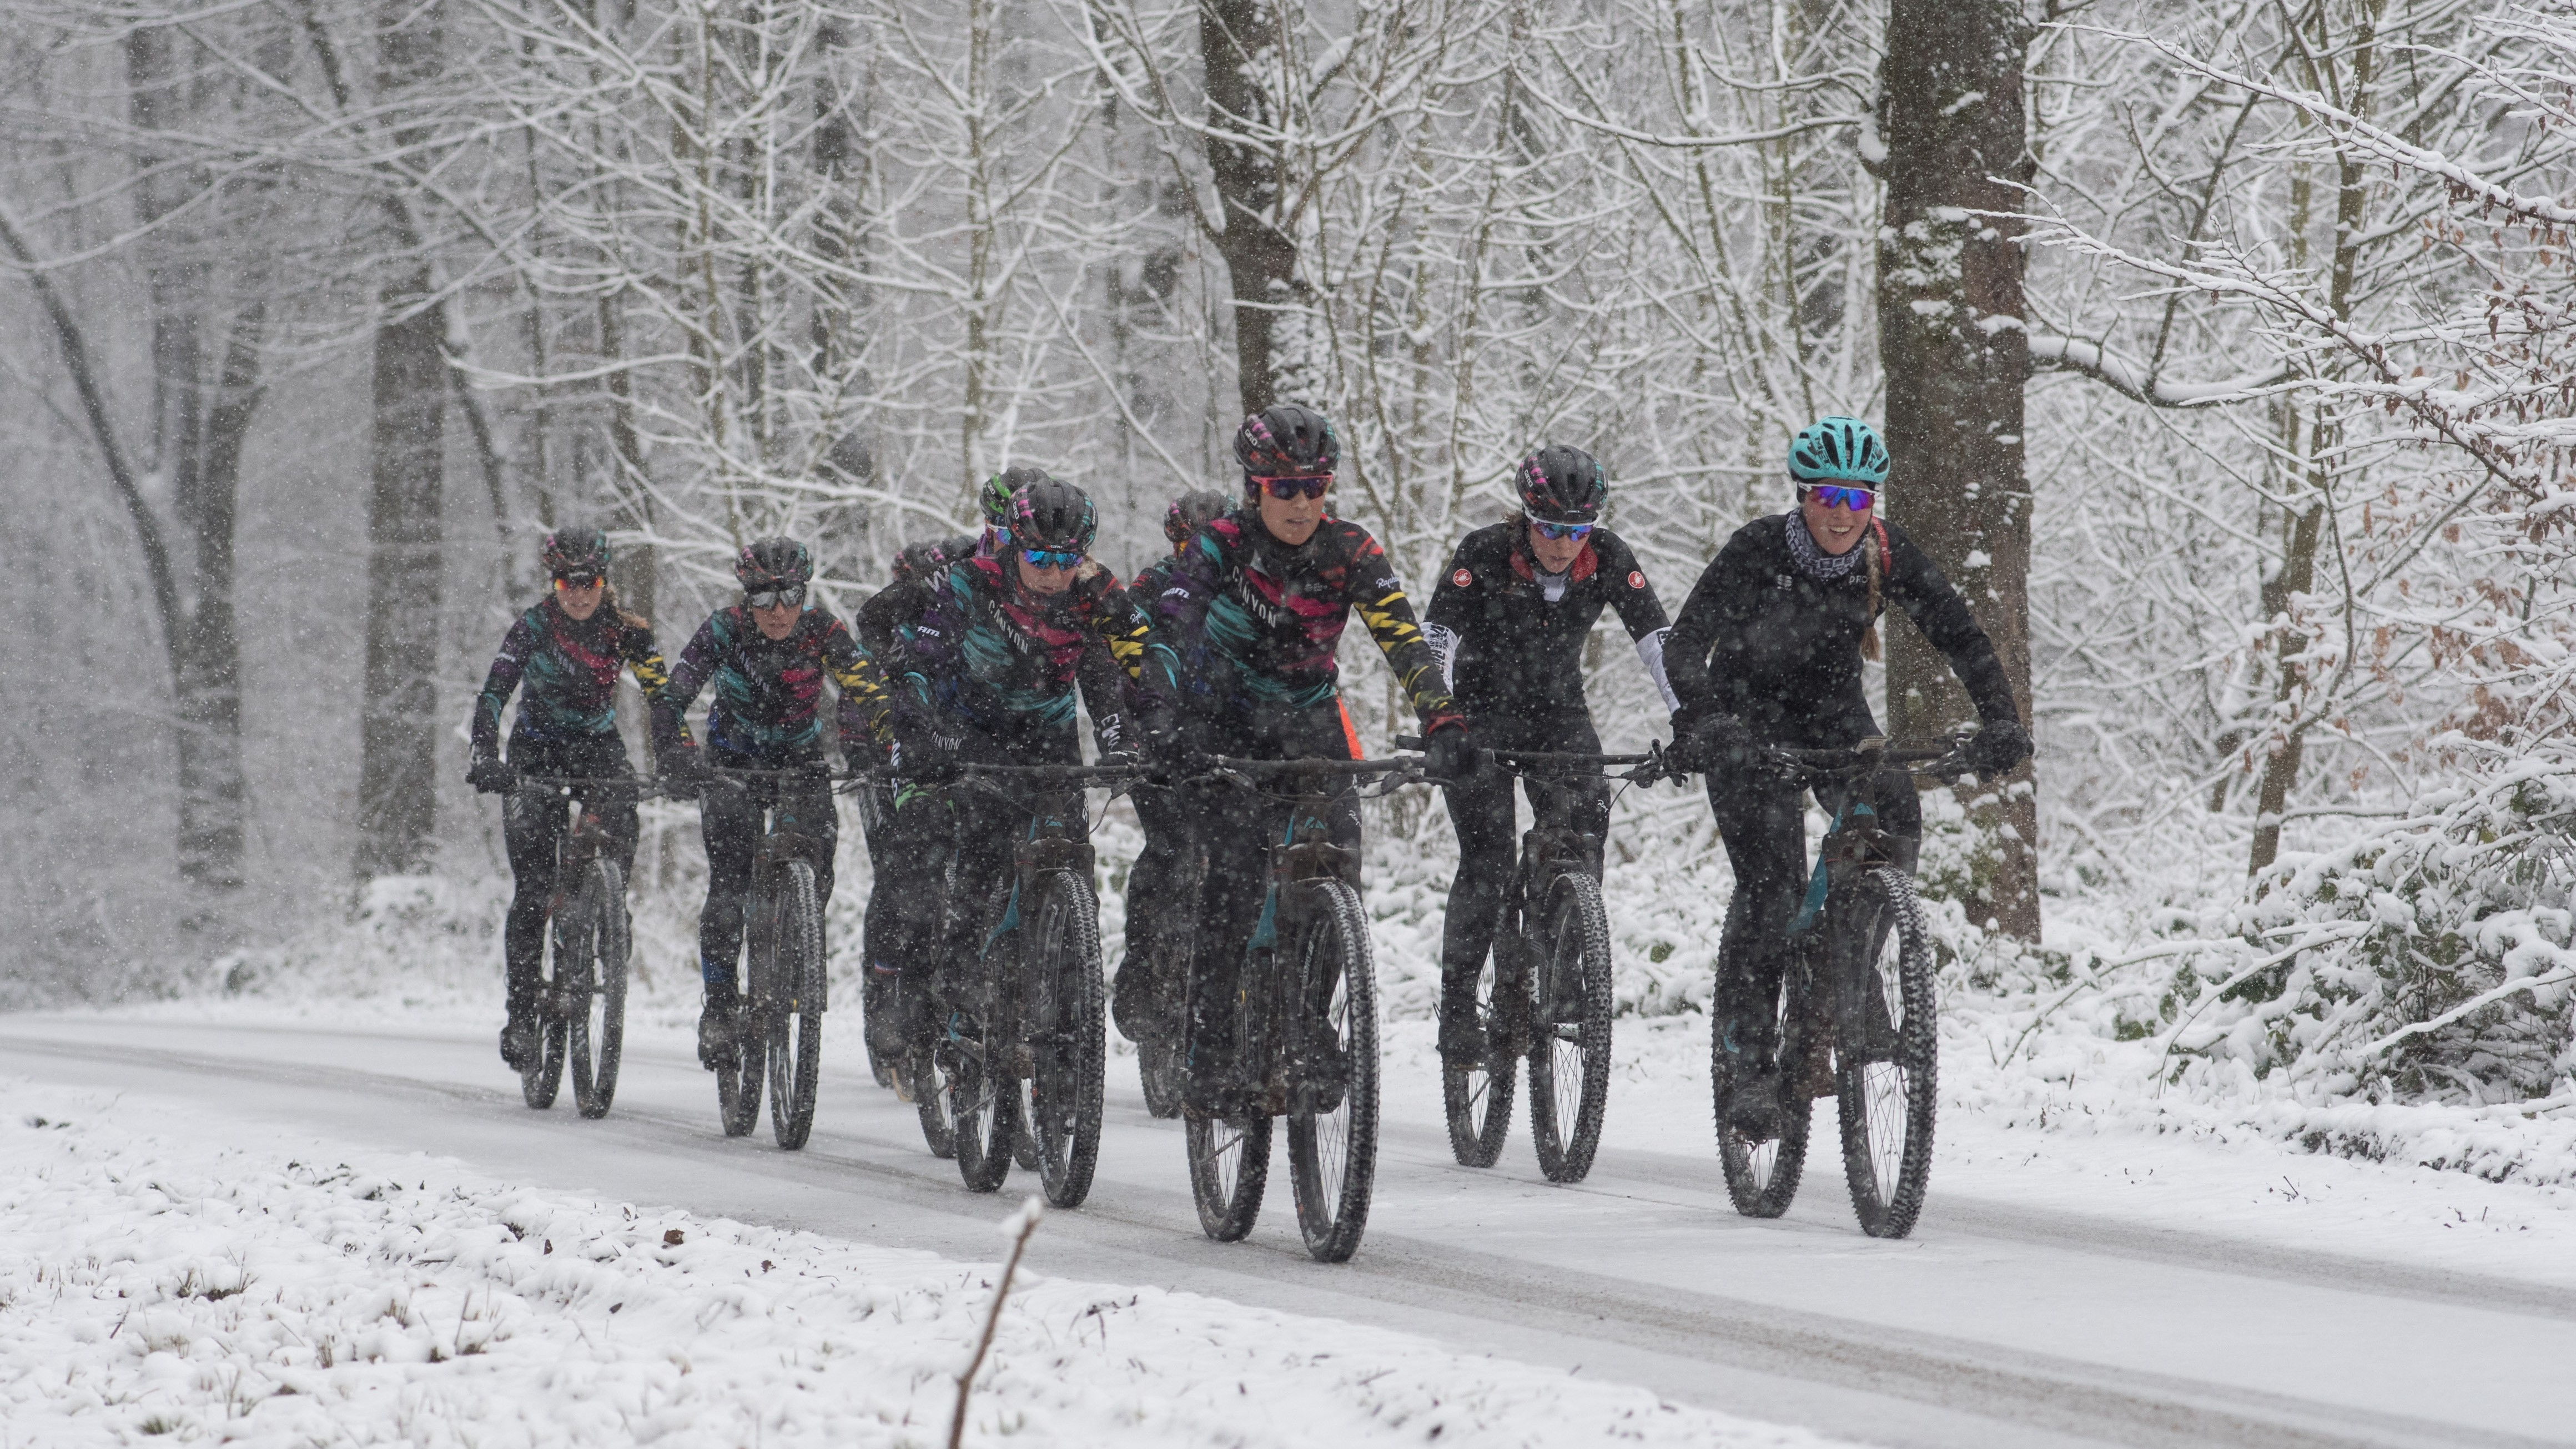 The finalists braved the snow on winter mountain bike rides with the Canyon//SRAM team